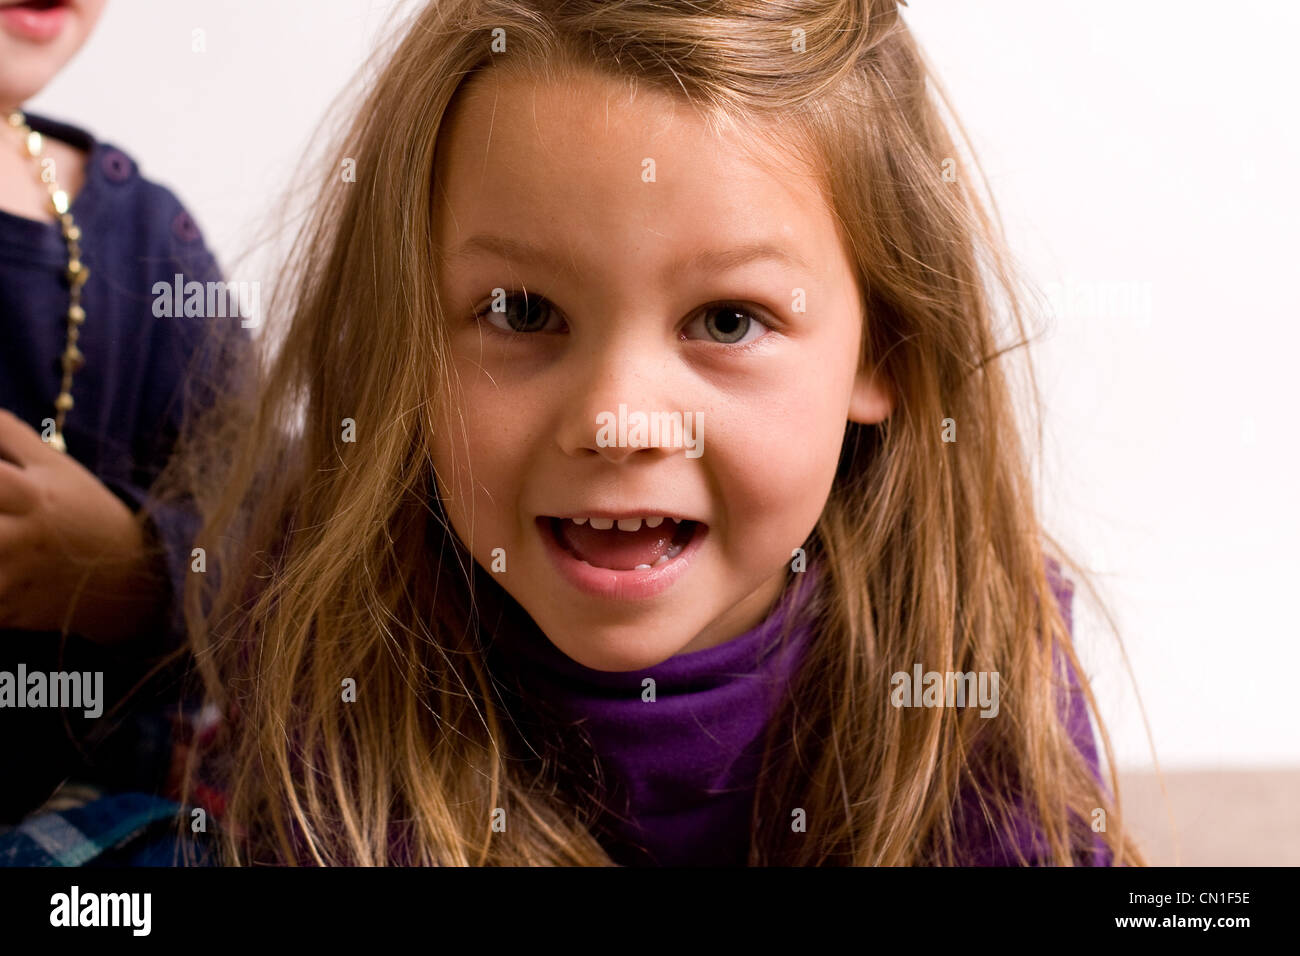 Pretty 5 year old girl going to say something - Stock Image